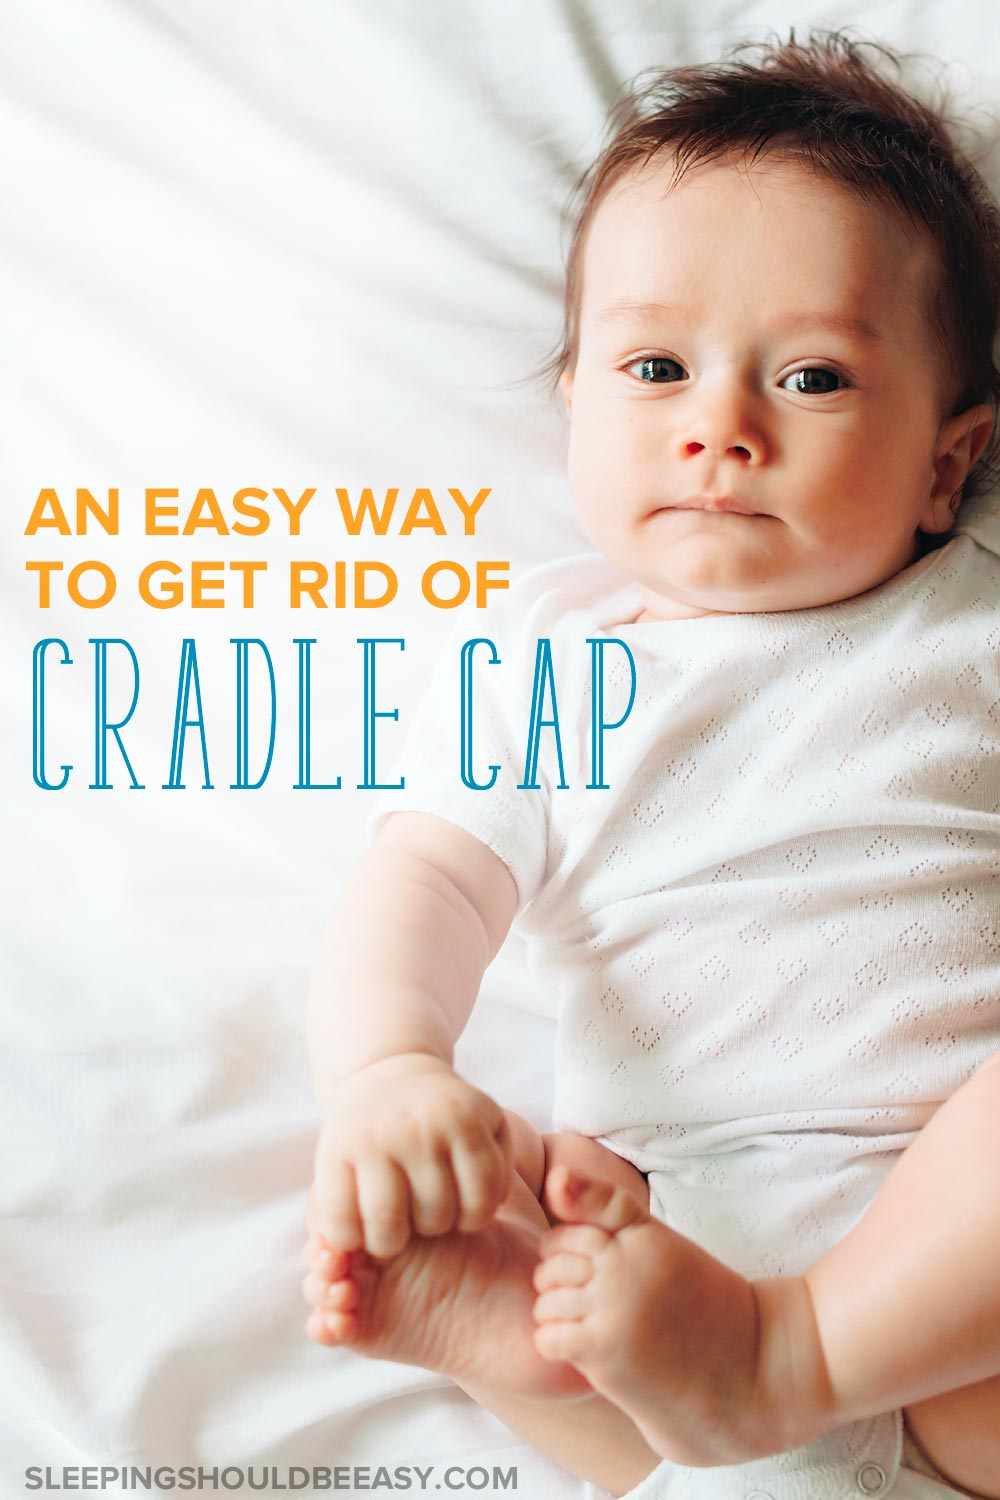 Baby lying down, looking at the camera: An easy way to get rid of cradle cap